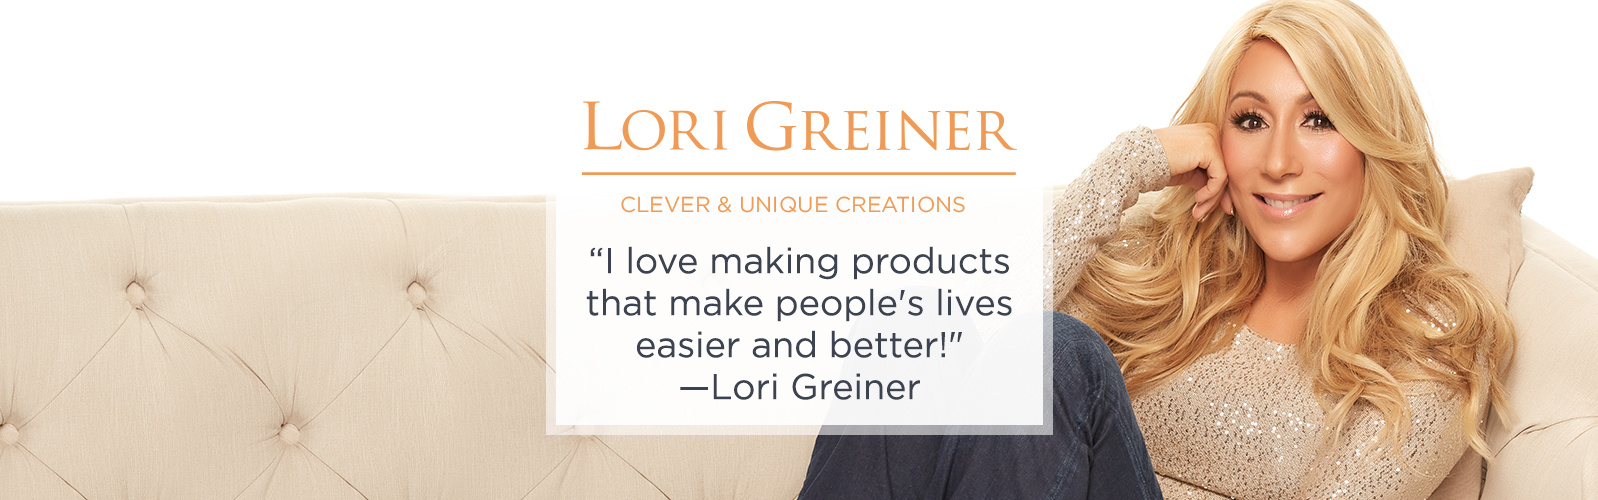 Lori Greiner Clever & Unique Creations - I love making products that make people's lives easier and better! - Lori Greiner